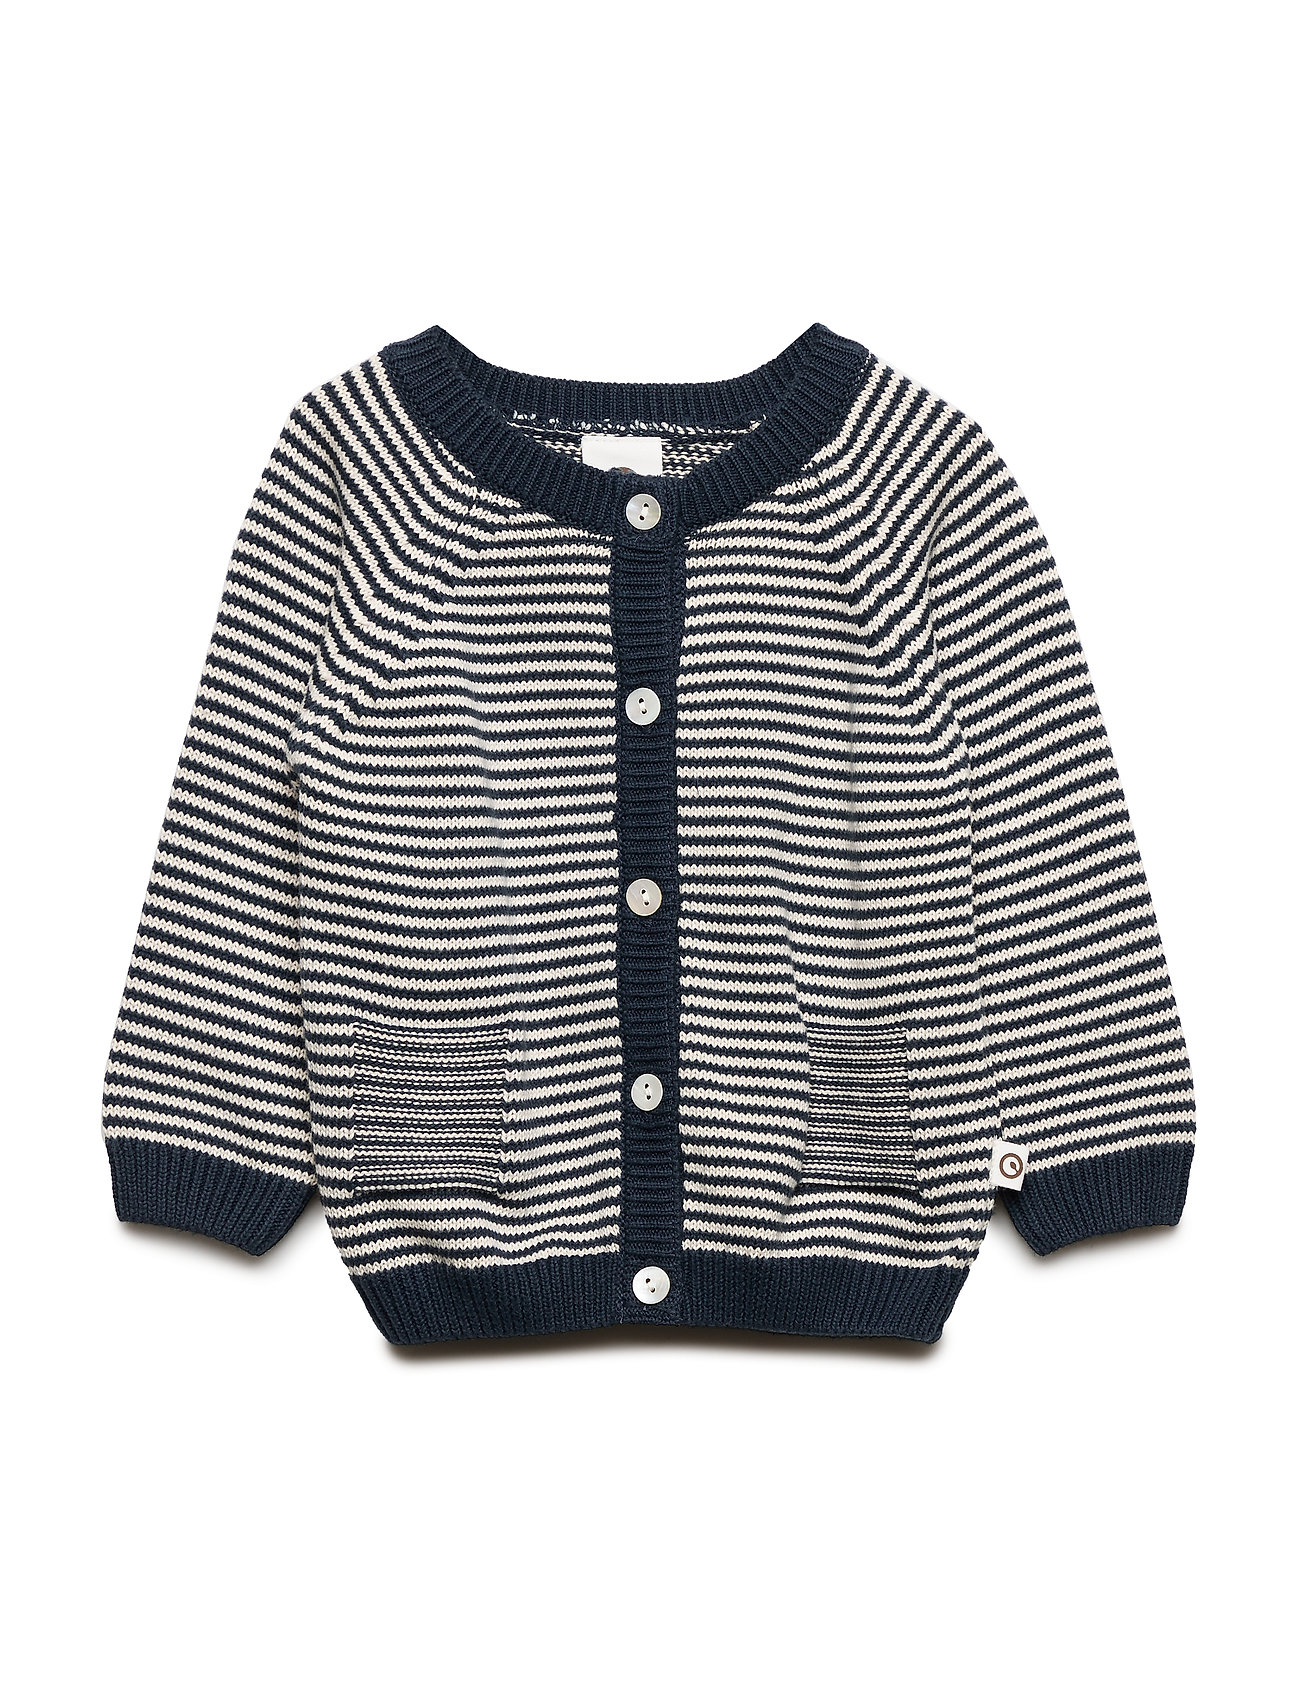 Müsli by Green Cotton Knit stripe cardigan baby - MIDNIGHT